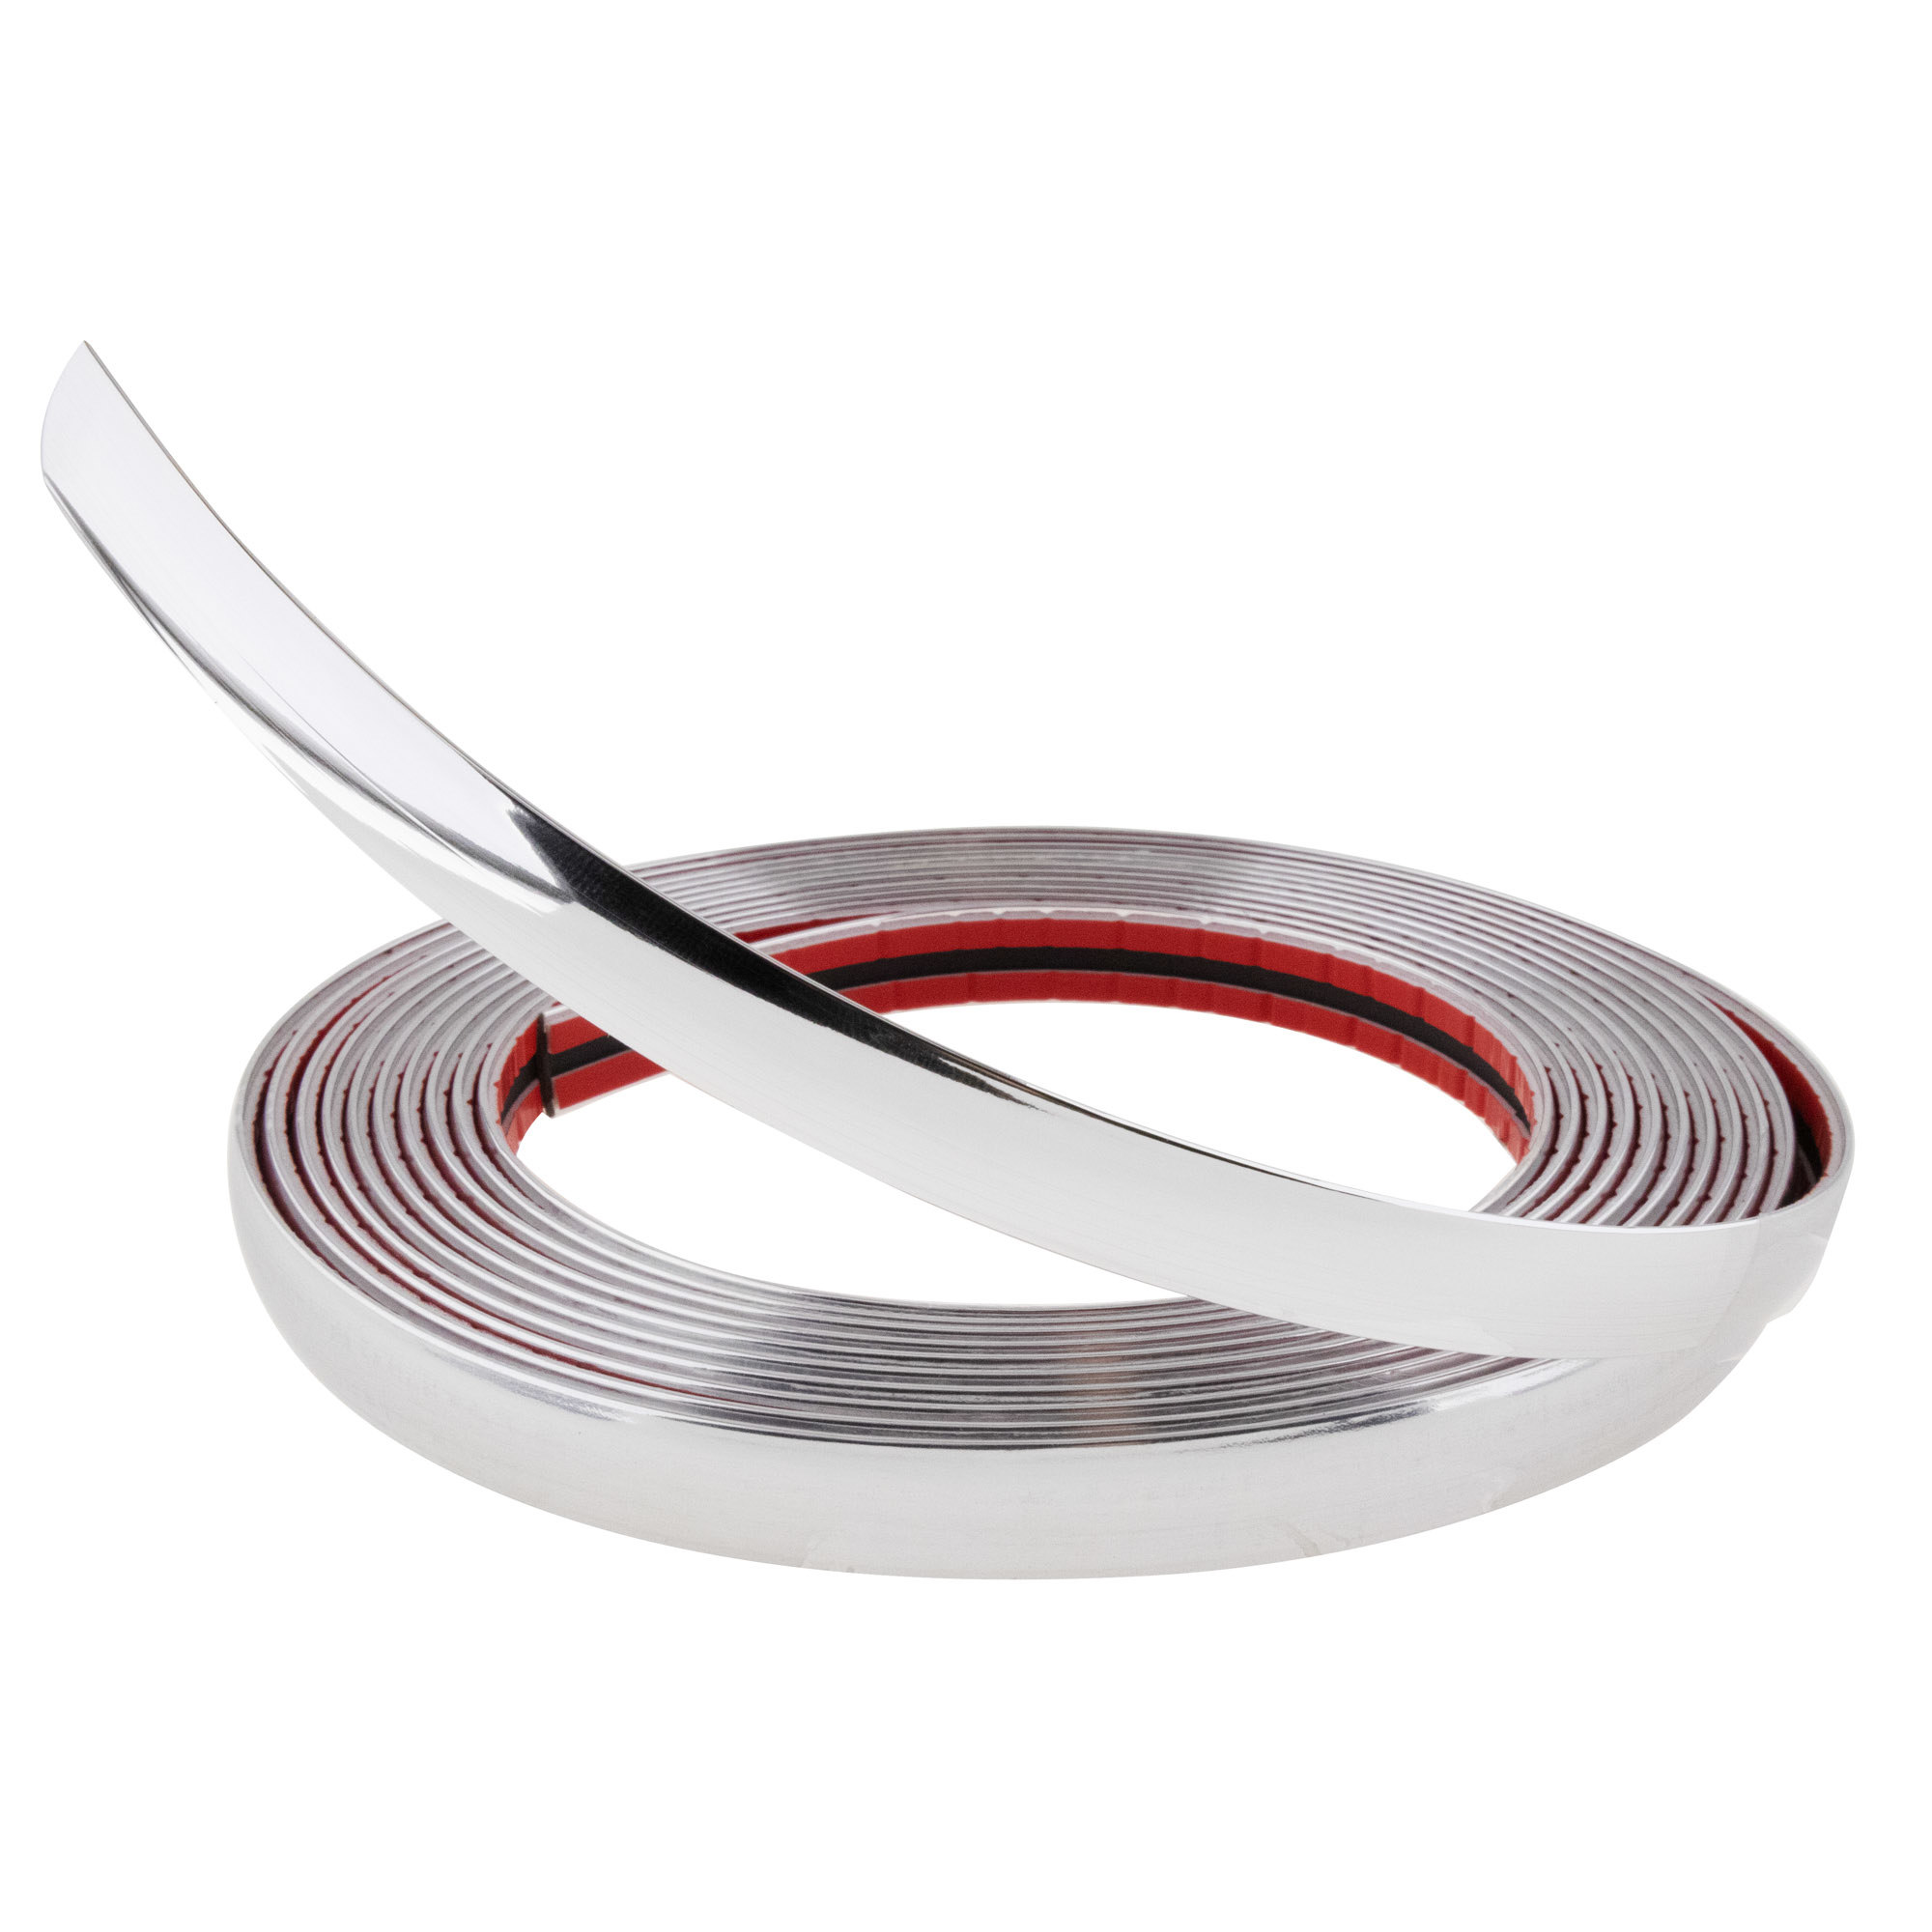 Chrome trim 14mm - 5 meter